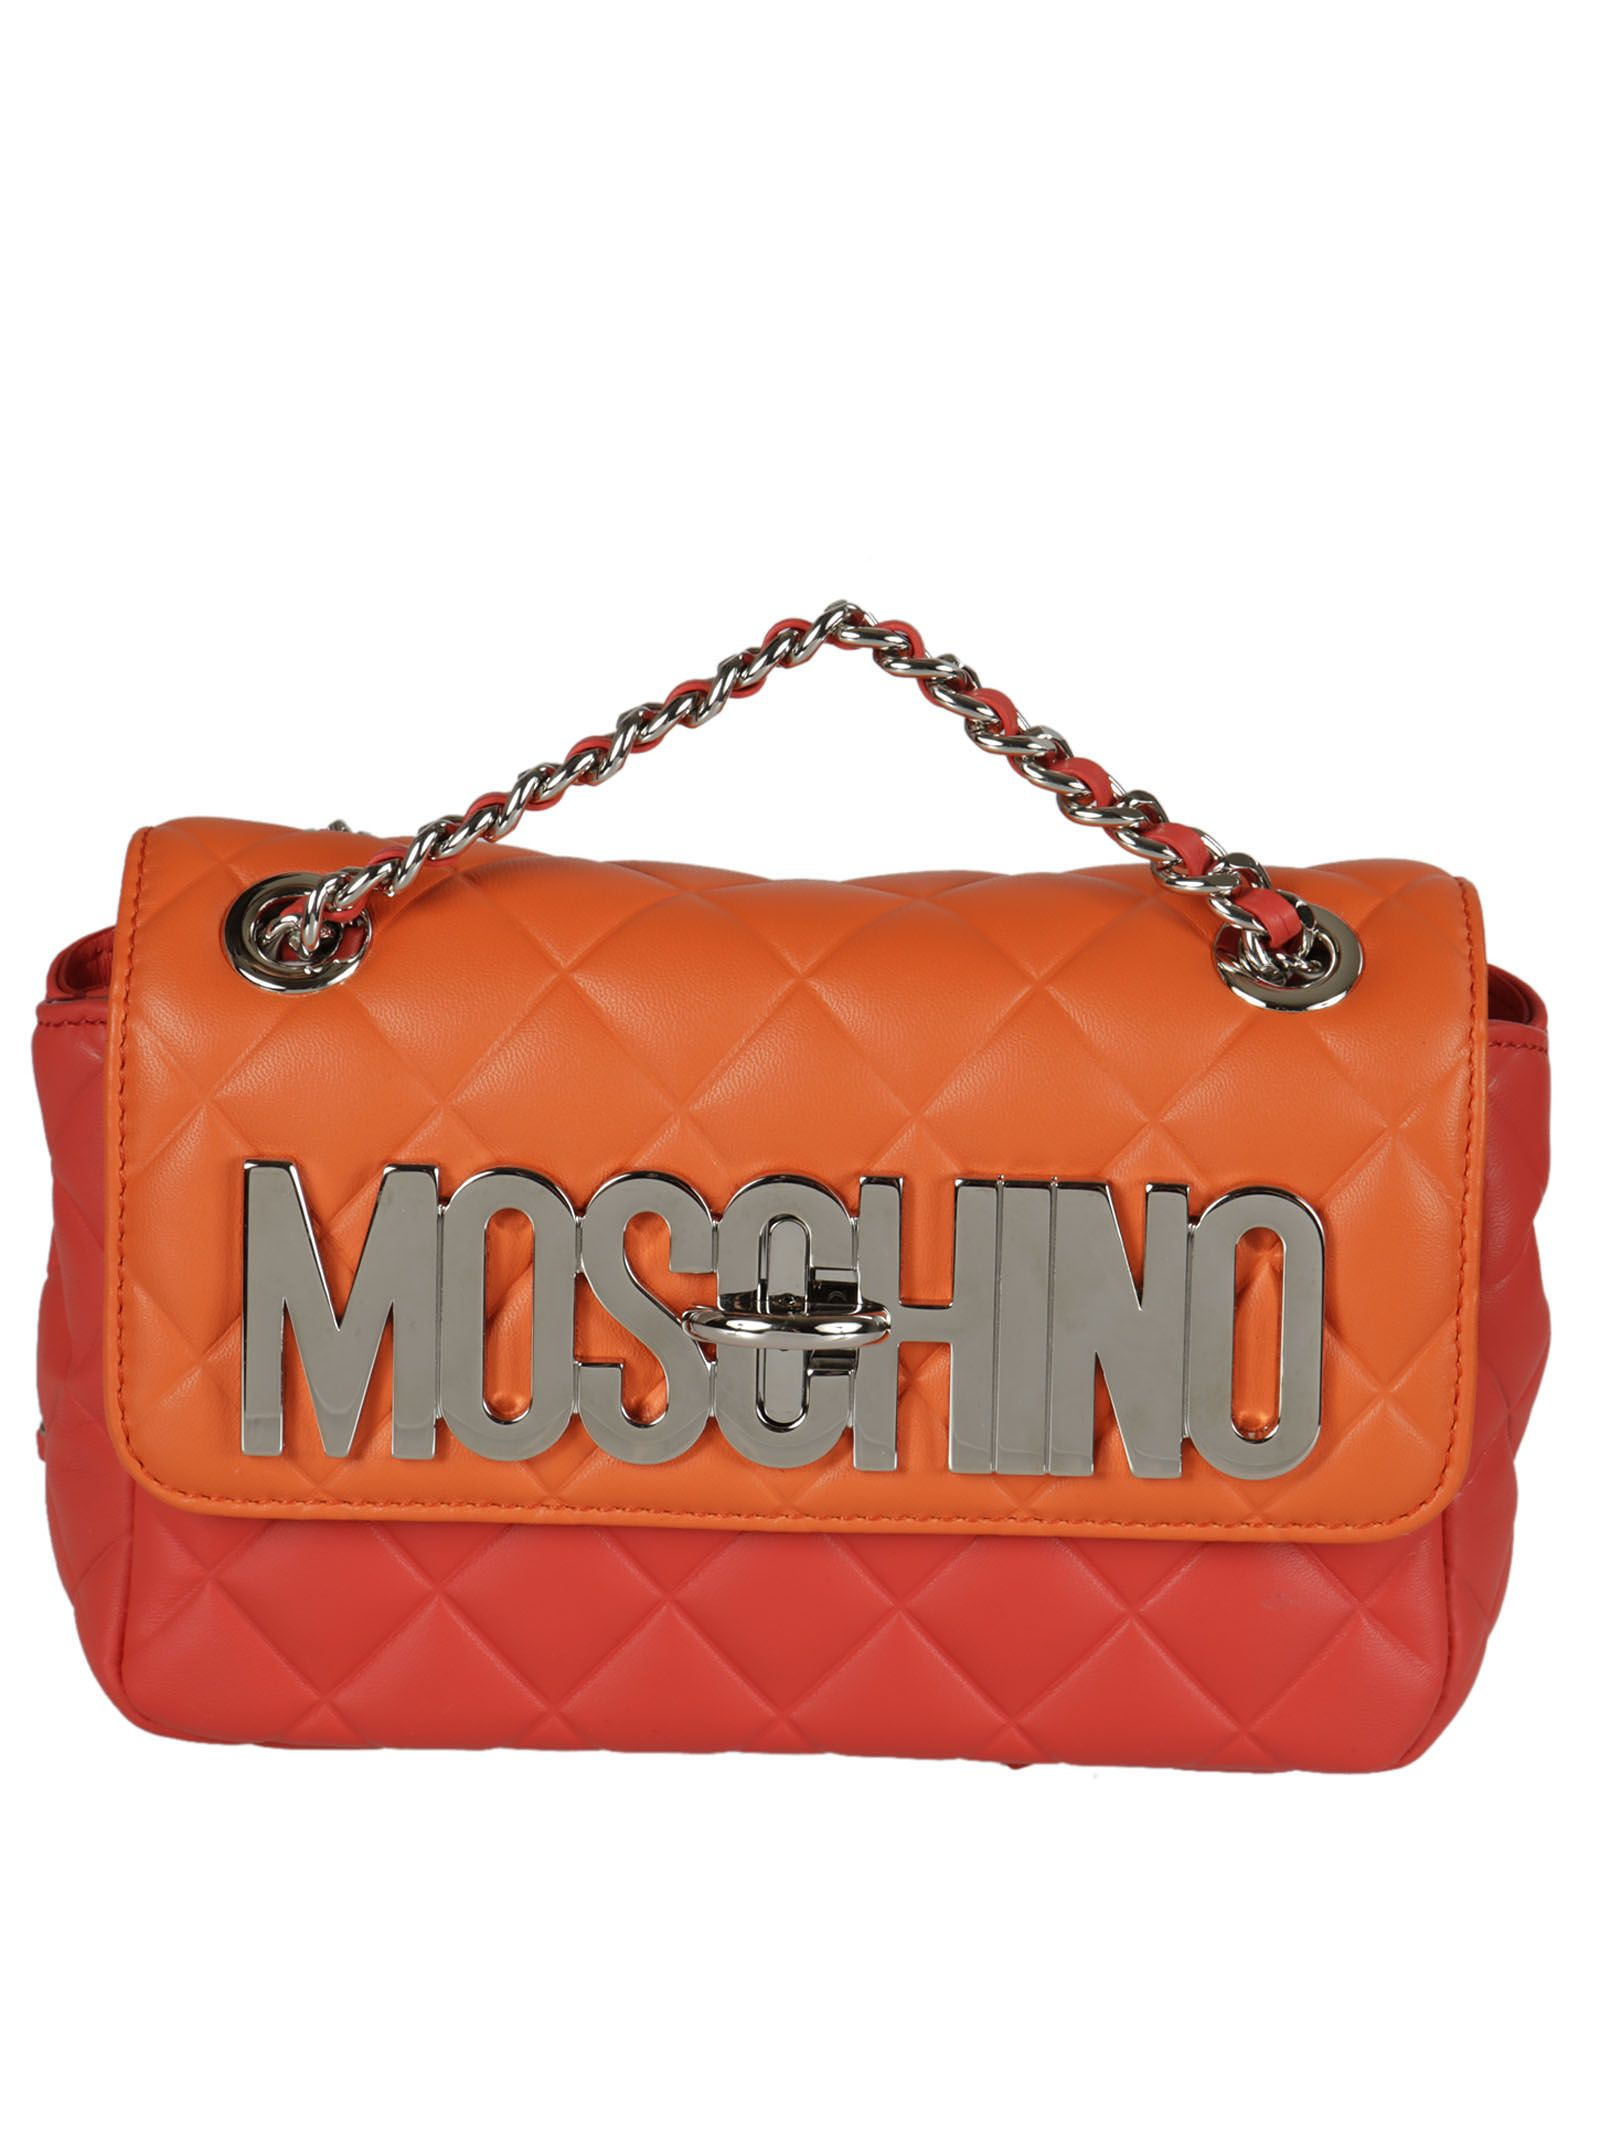 Logo Plaque Shoulder Bag from Moschino: Red/Orange Logo Plaque Shoulder Bag with Twist-lock closure, Chain Strap, Internal pocket and Internal Logo stamp.